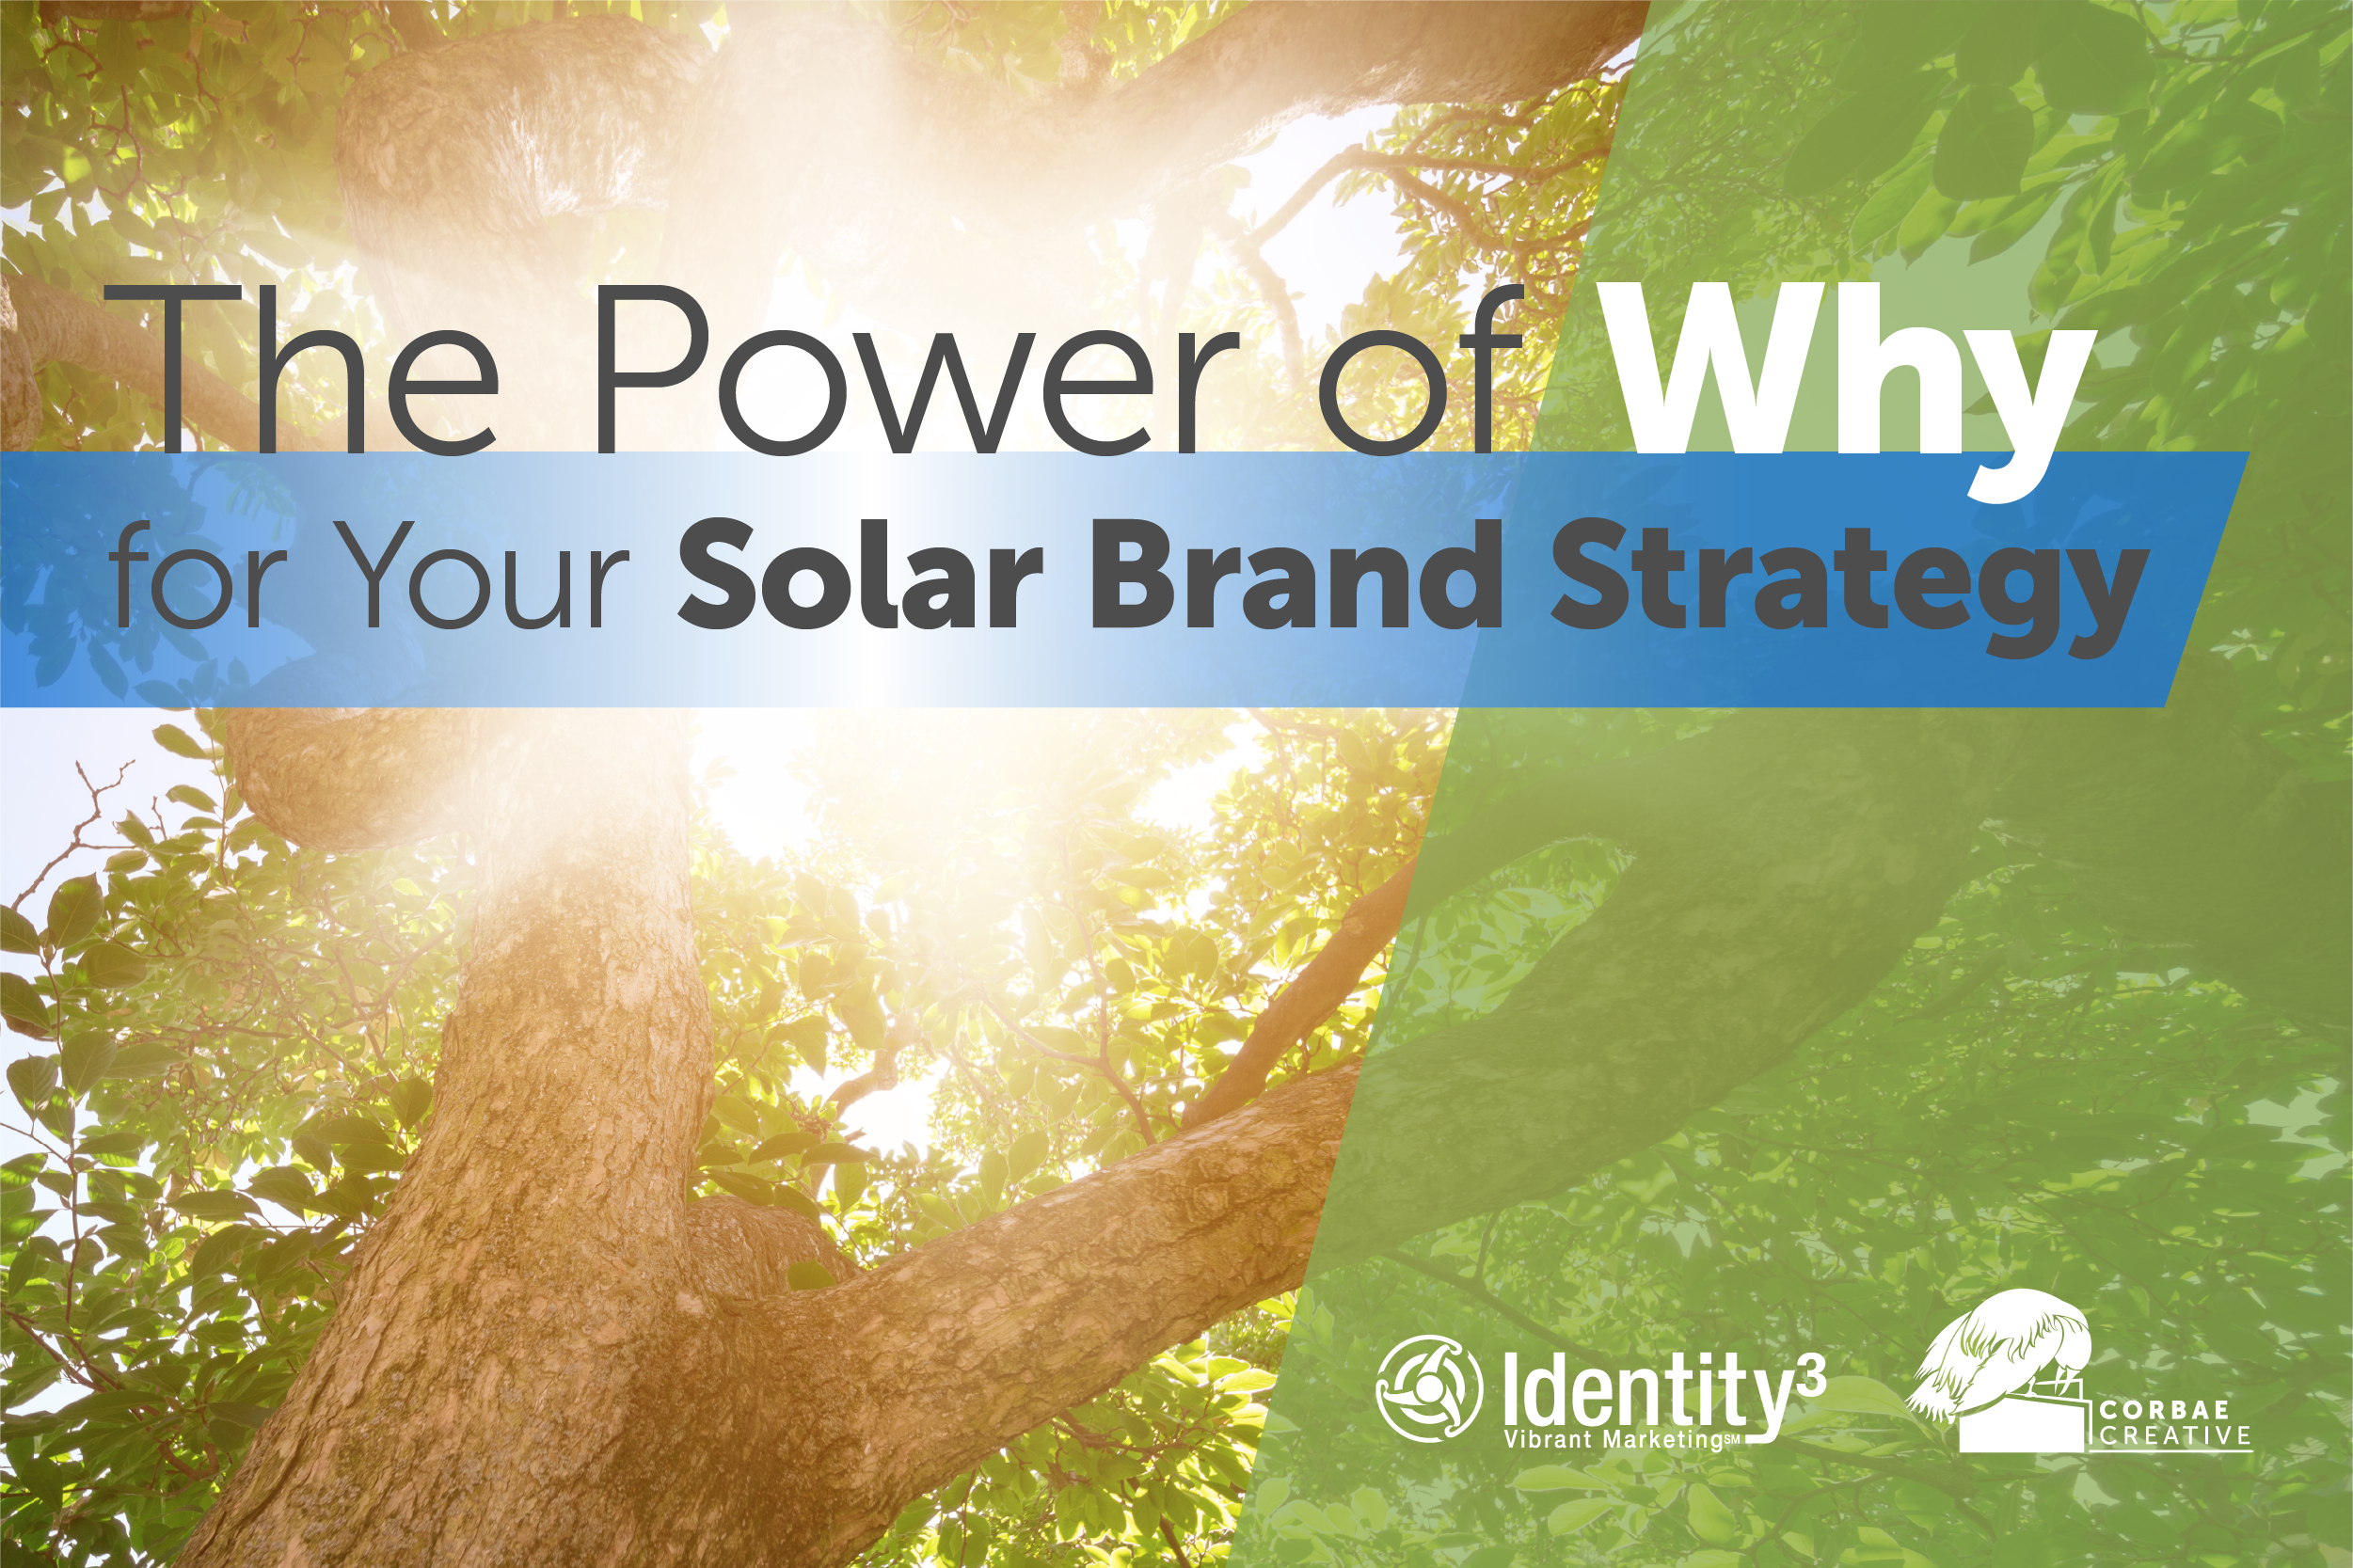 The Power of Why with Your Solar Brand Strategy